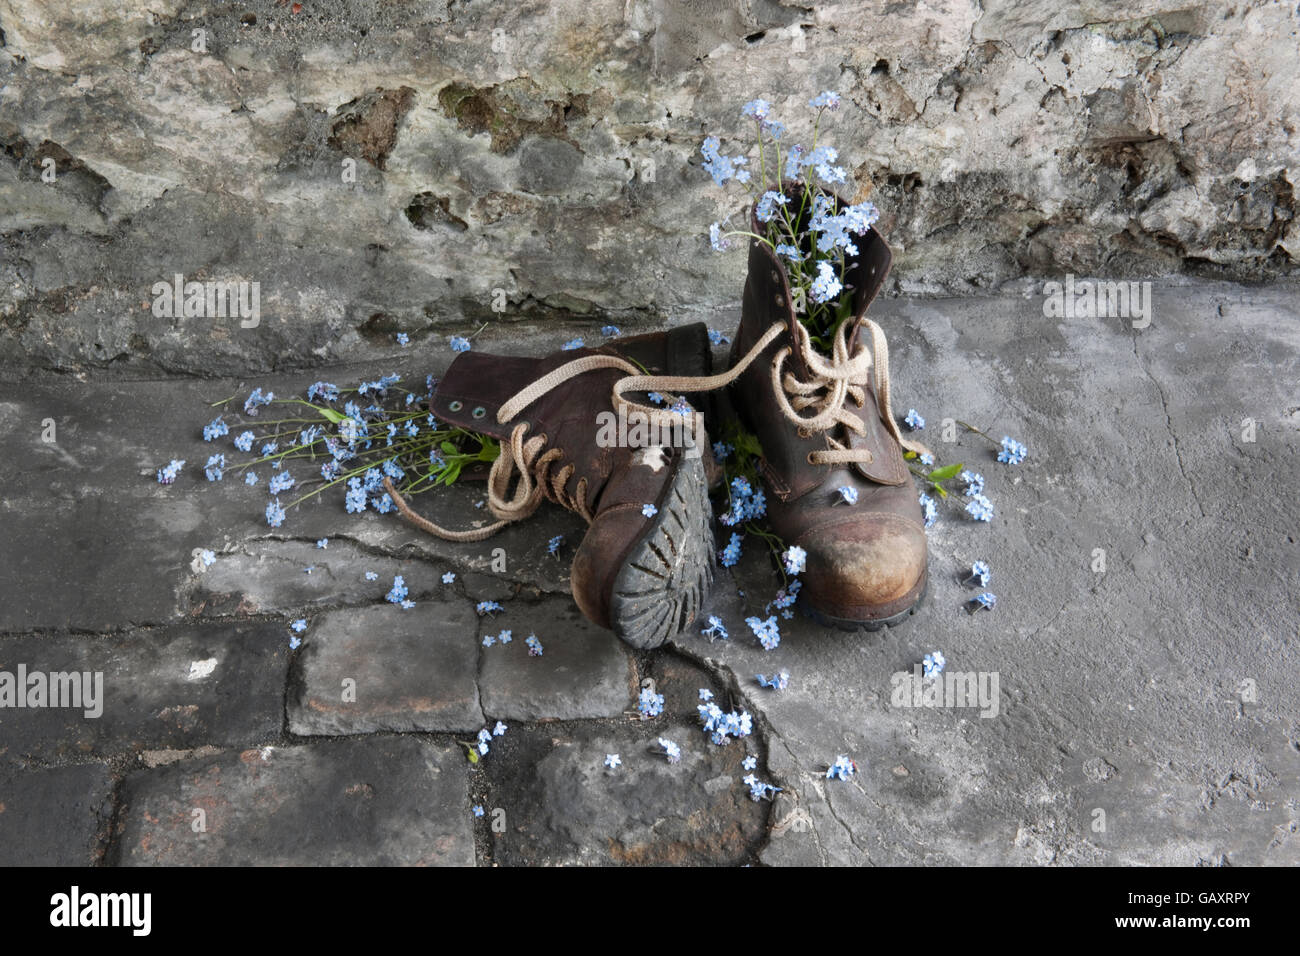 A pair of old leather work boots on workshop floor with forget-me-not flowers. - Stock Image